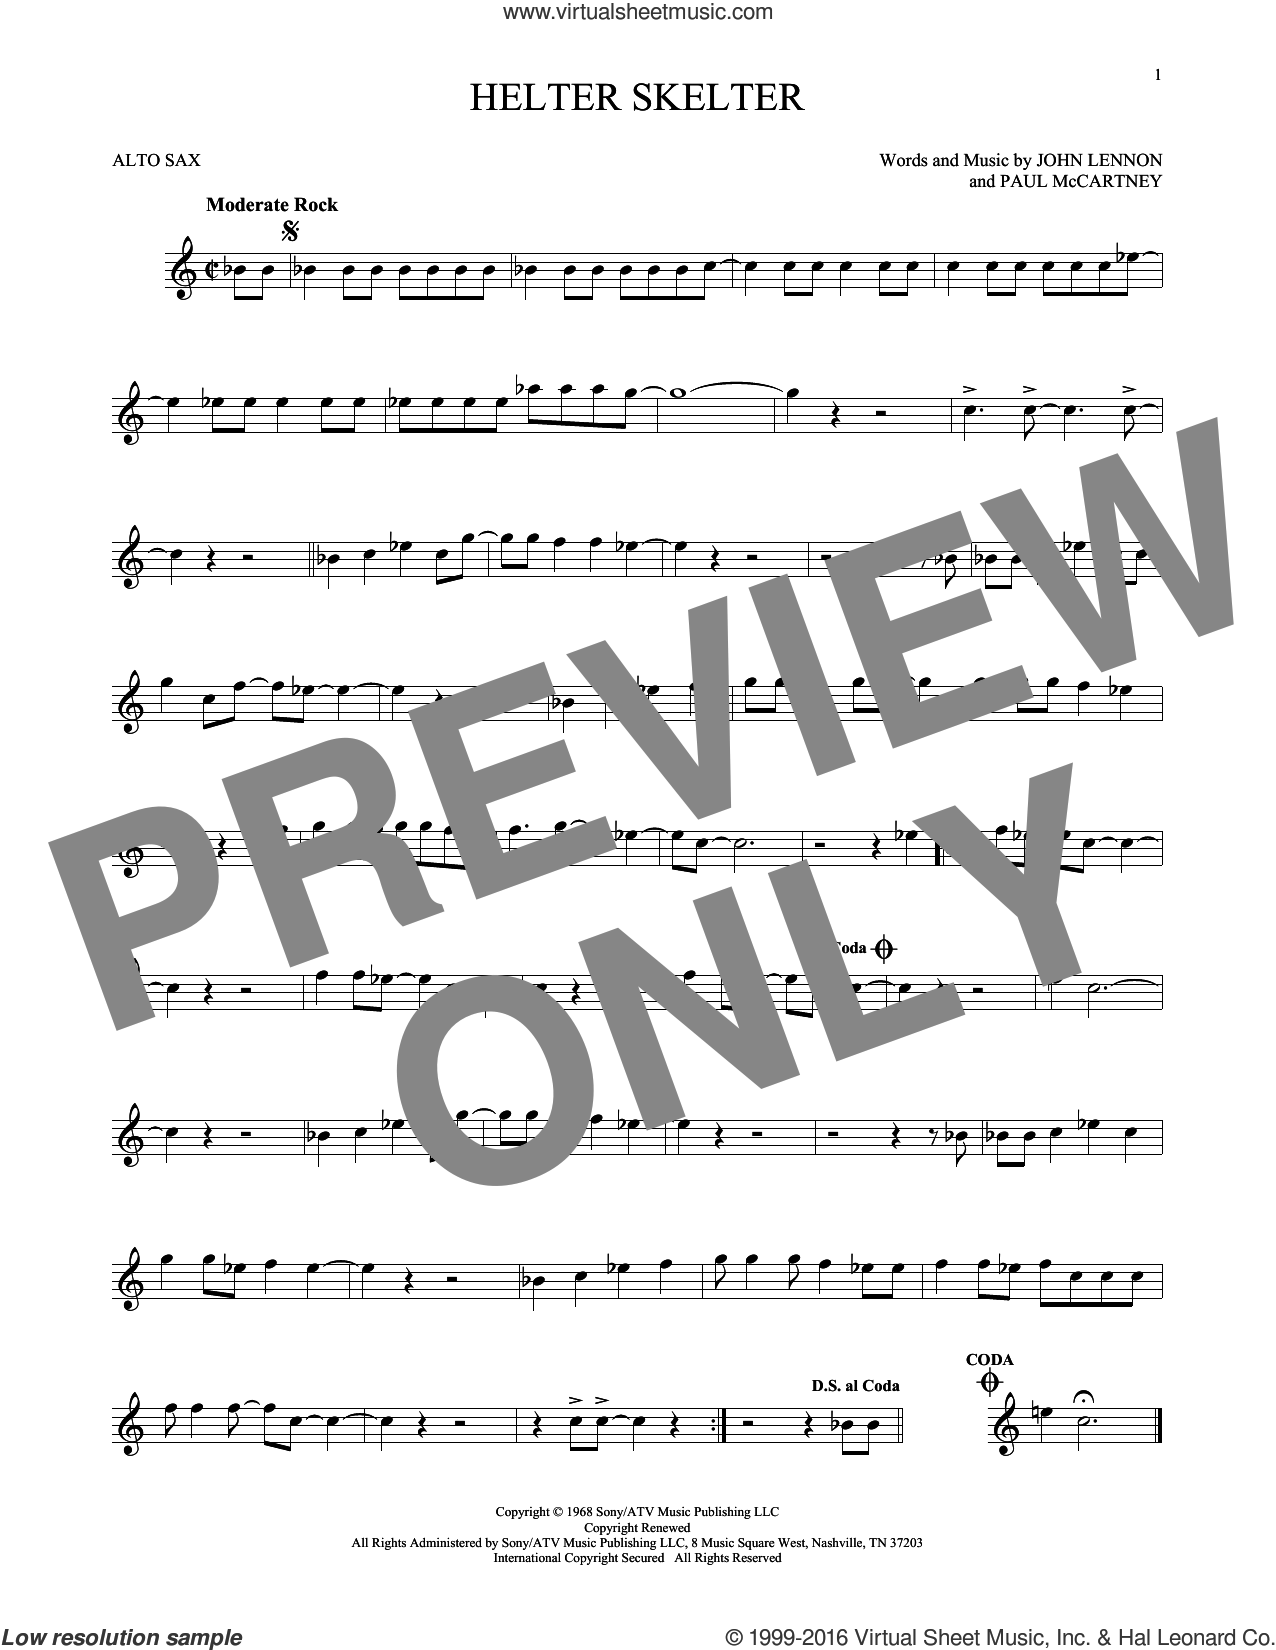 Helter Skelter sheet music for alto saxophone solo by The Beatles, John Lennon and Paul McCartney, intermediate skill level